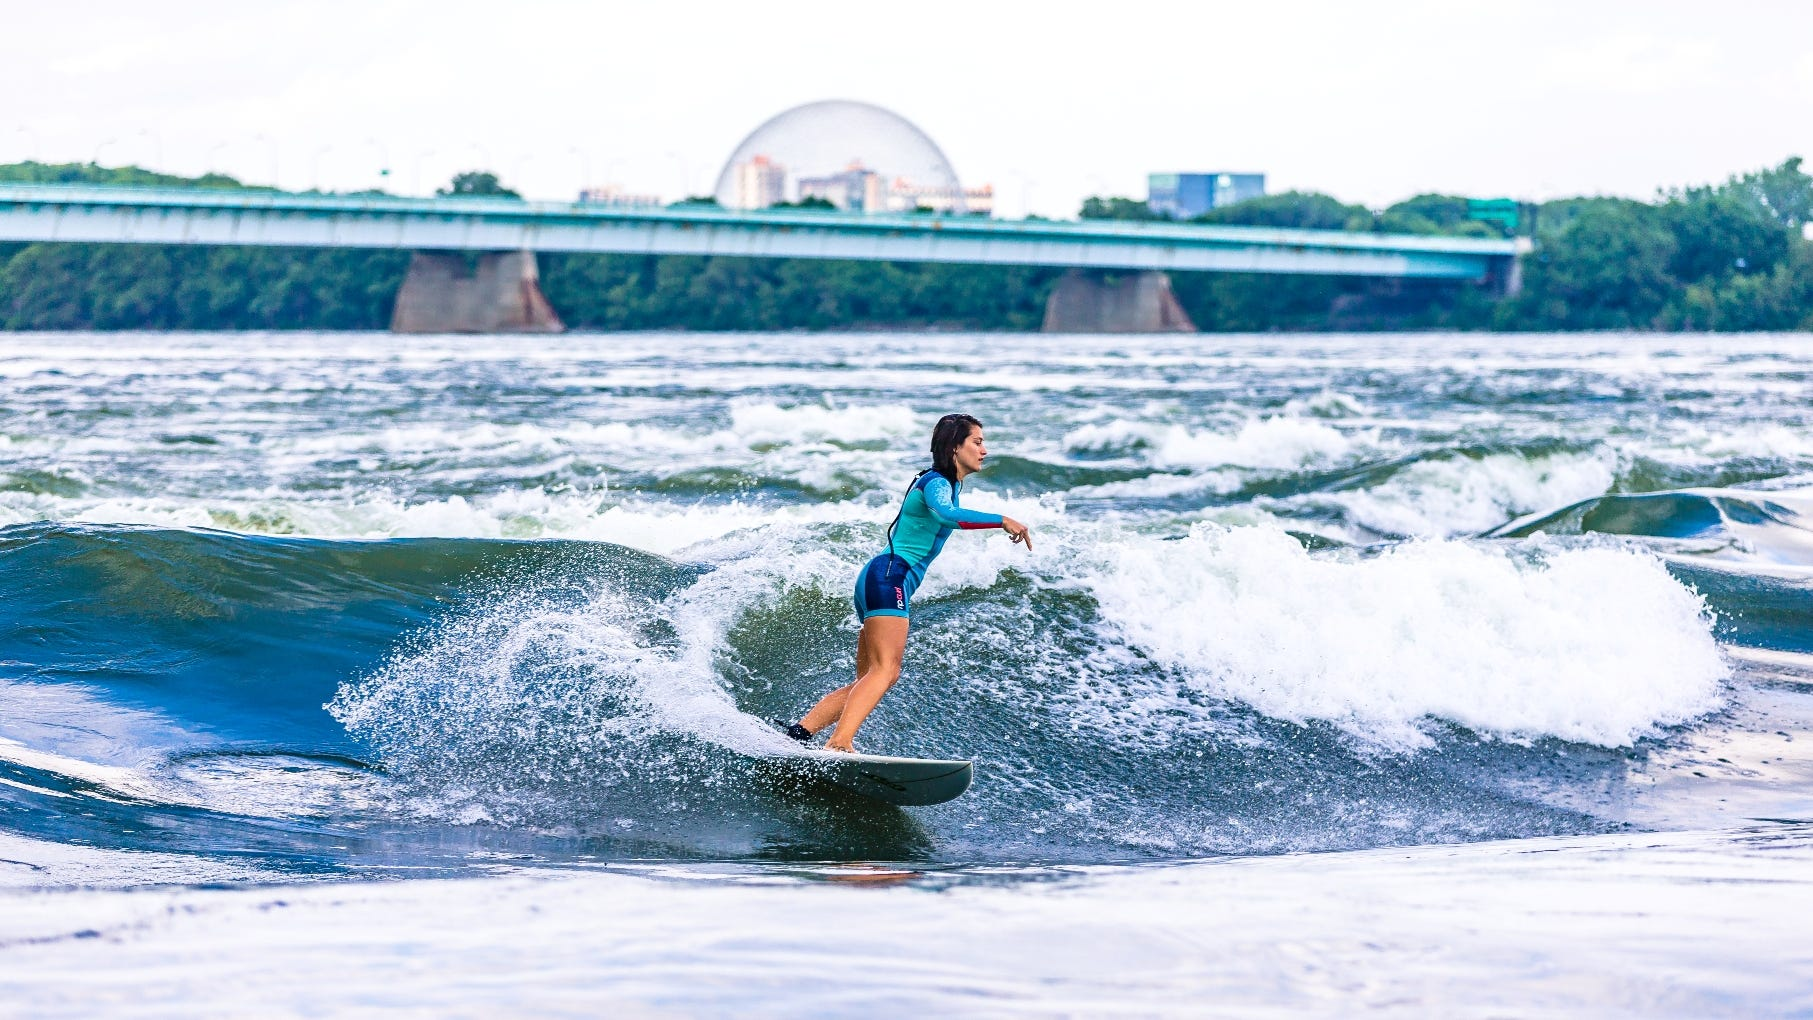 Montreal surfing centers on a standing wave in the St. Lawrence River caused by a river rapid.